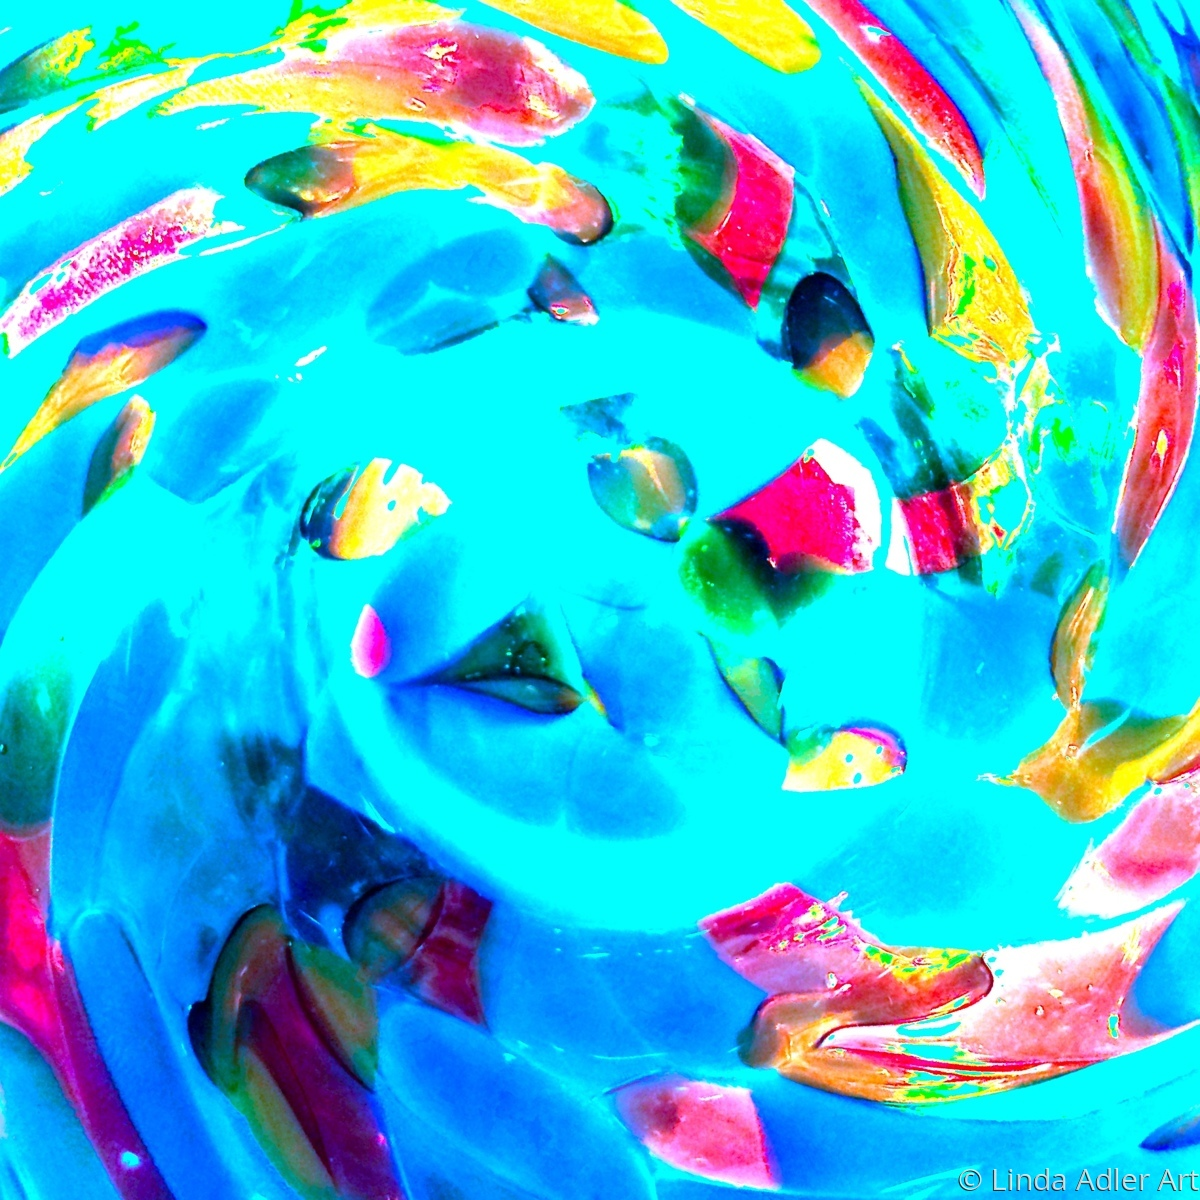 Whirling and Swirling (large view)